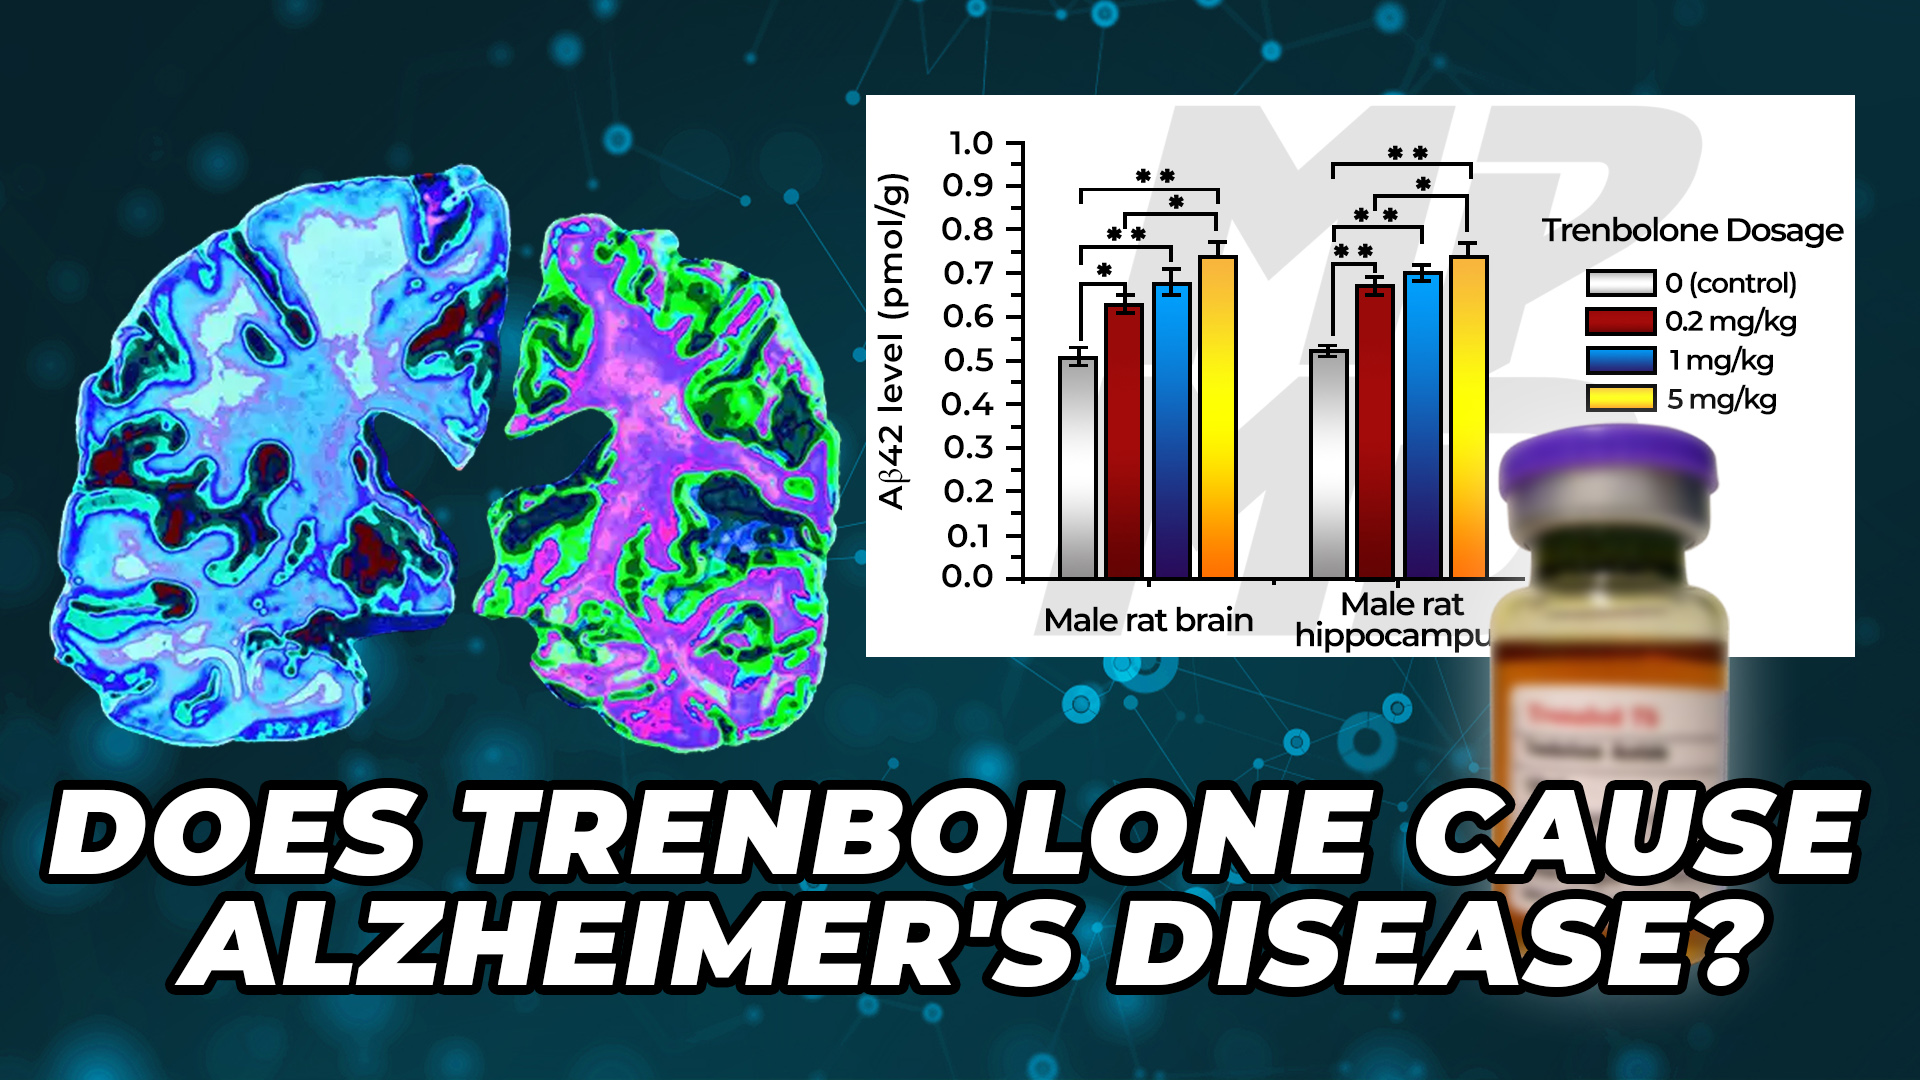 Beta Amyloid Plaque Built Up In The Brain Beside A Bottle Of Trenbolone. Trenbolone increased Beta Amyloid Plaque build up in a rodent model, suggesting that Trenbolone may cause Alzheimer's